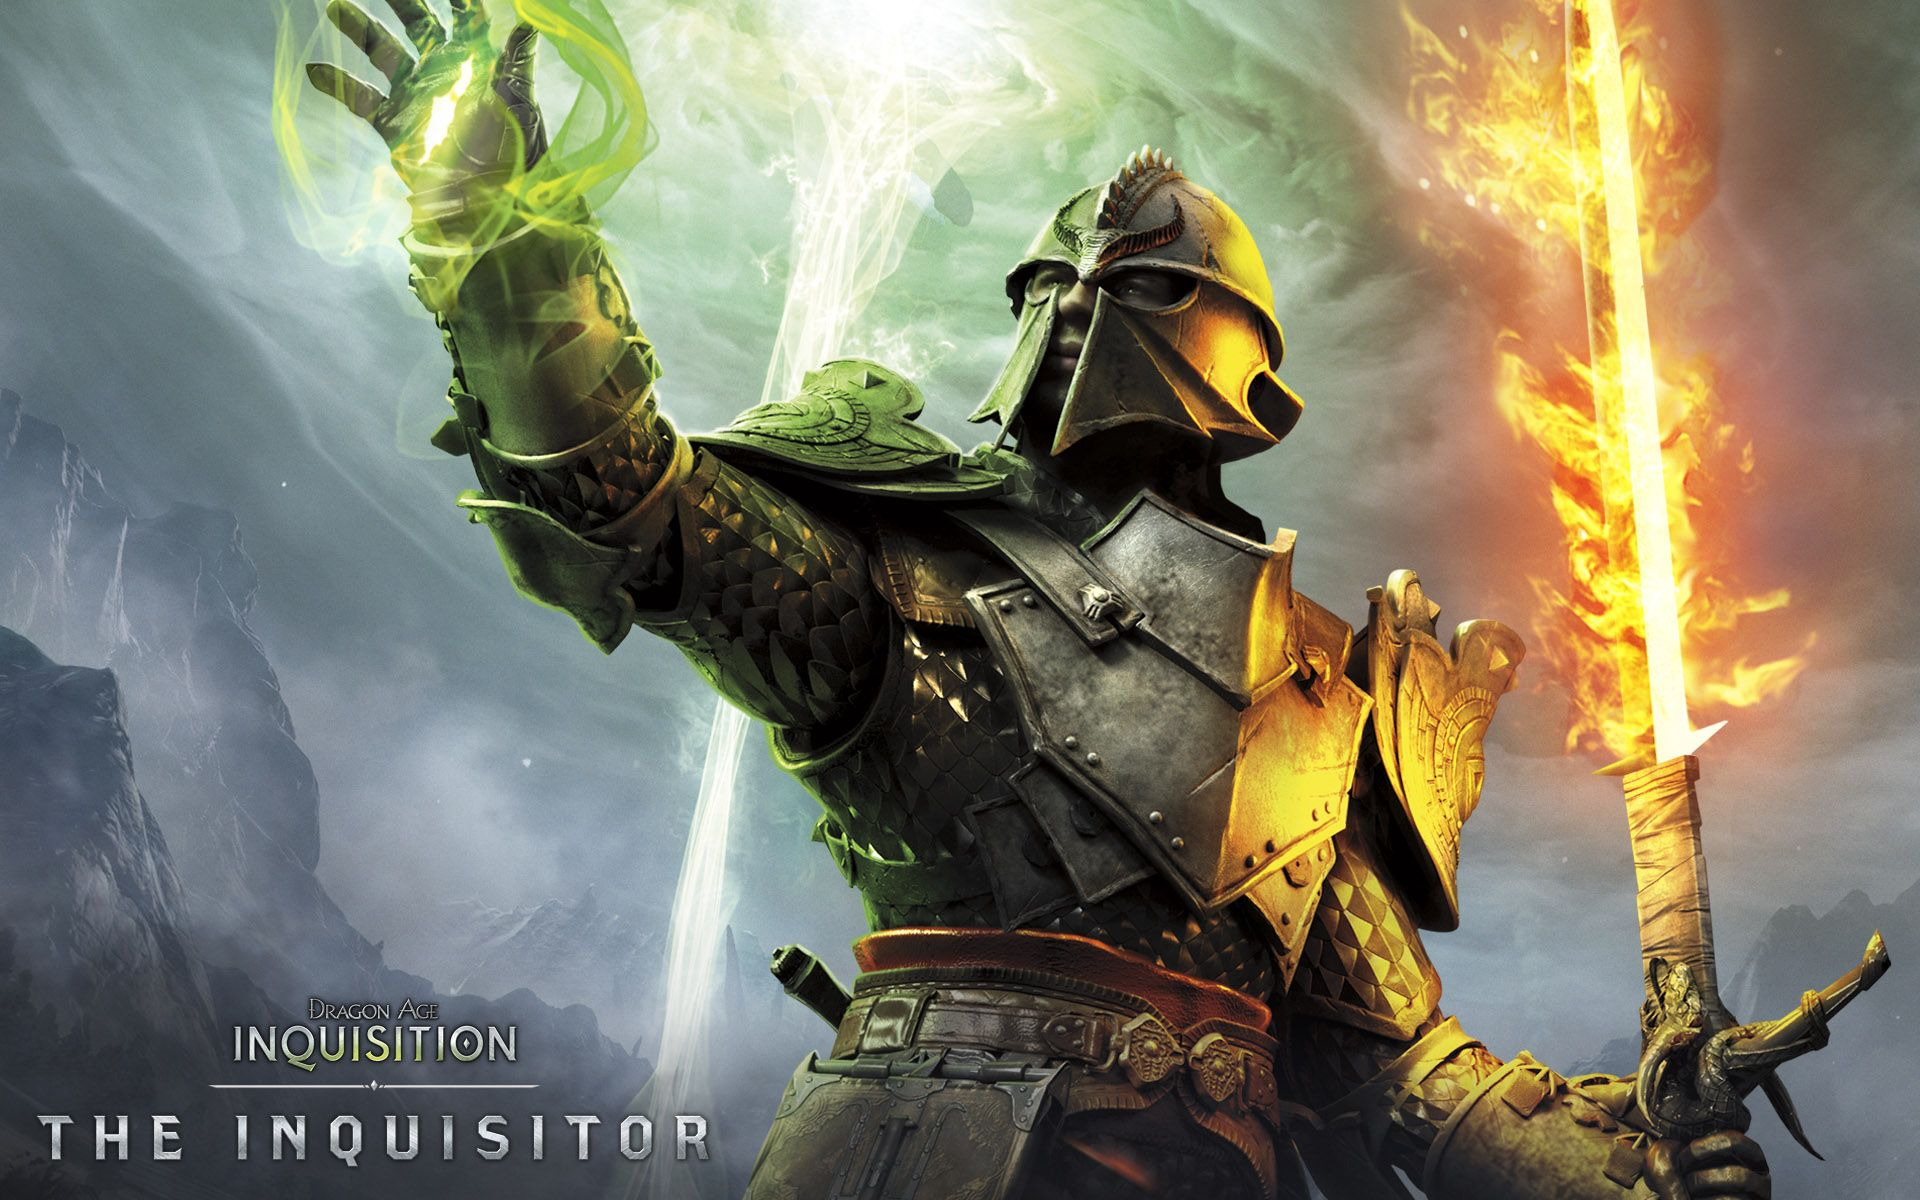 Dragon Age Inquisition Computer Wallpapers Desktop Backgrounds 1920x1200 Id 556183 Dragon Age Dragon Age Inquisition Dragon Age Wallpaper